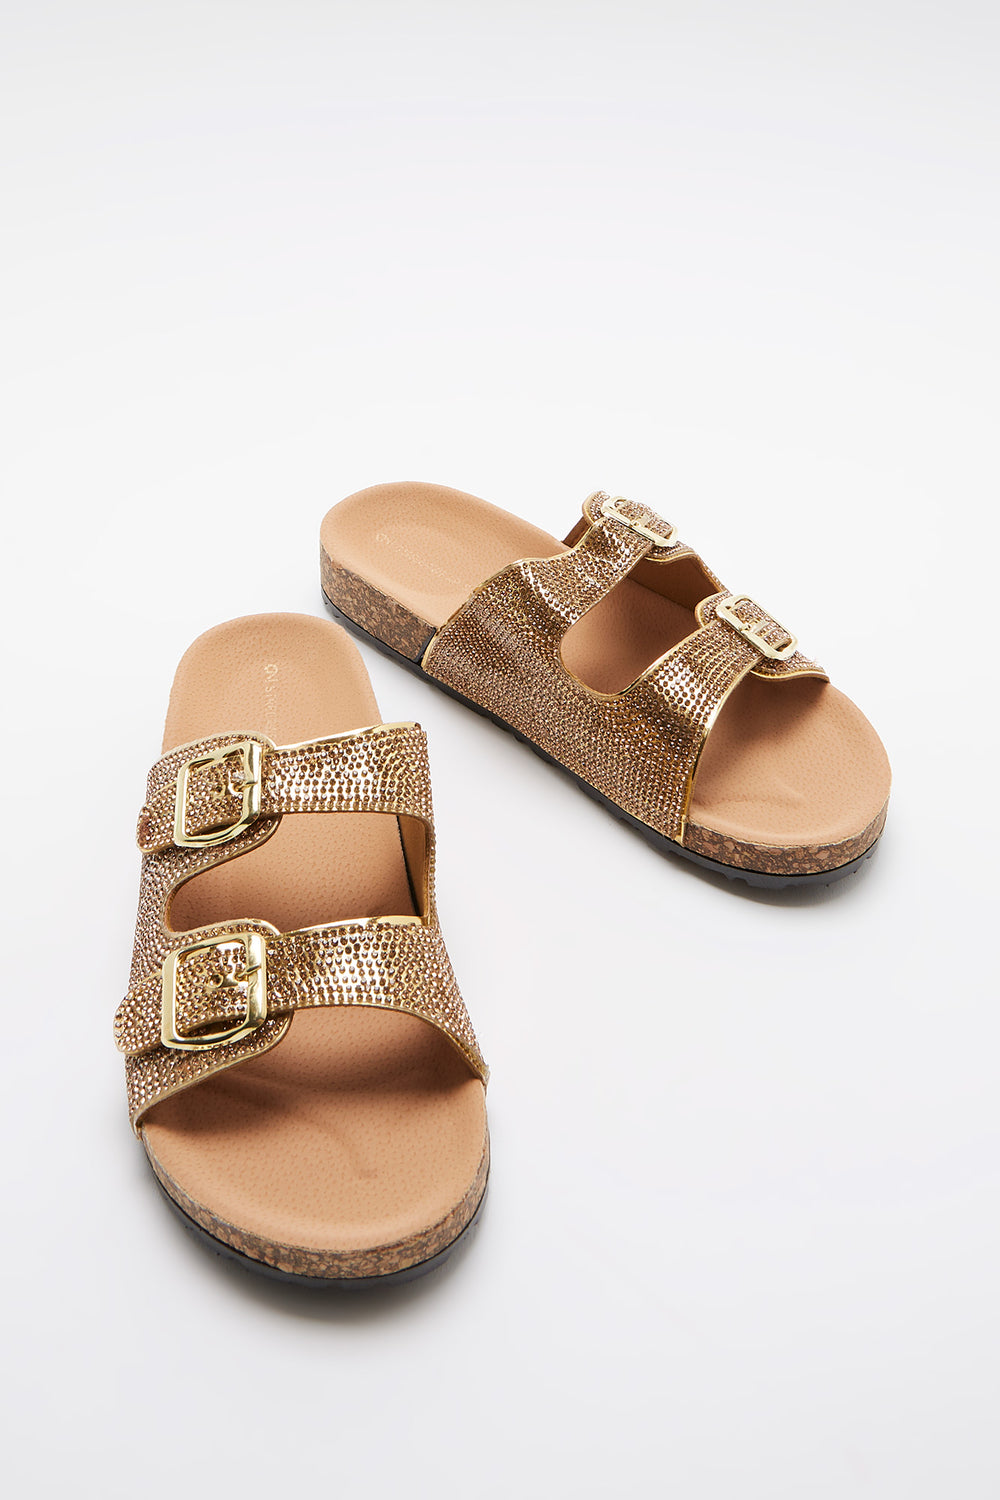 Rhinestone Double Band Cork Slide Gold